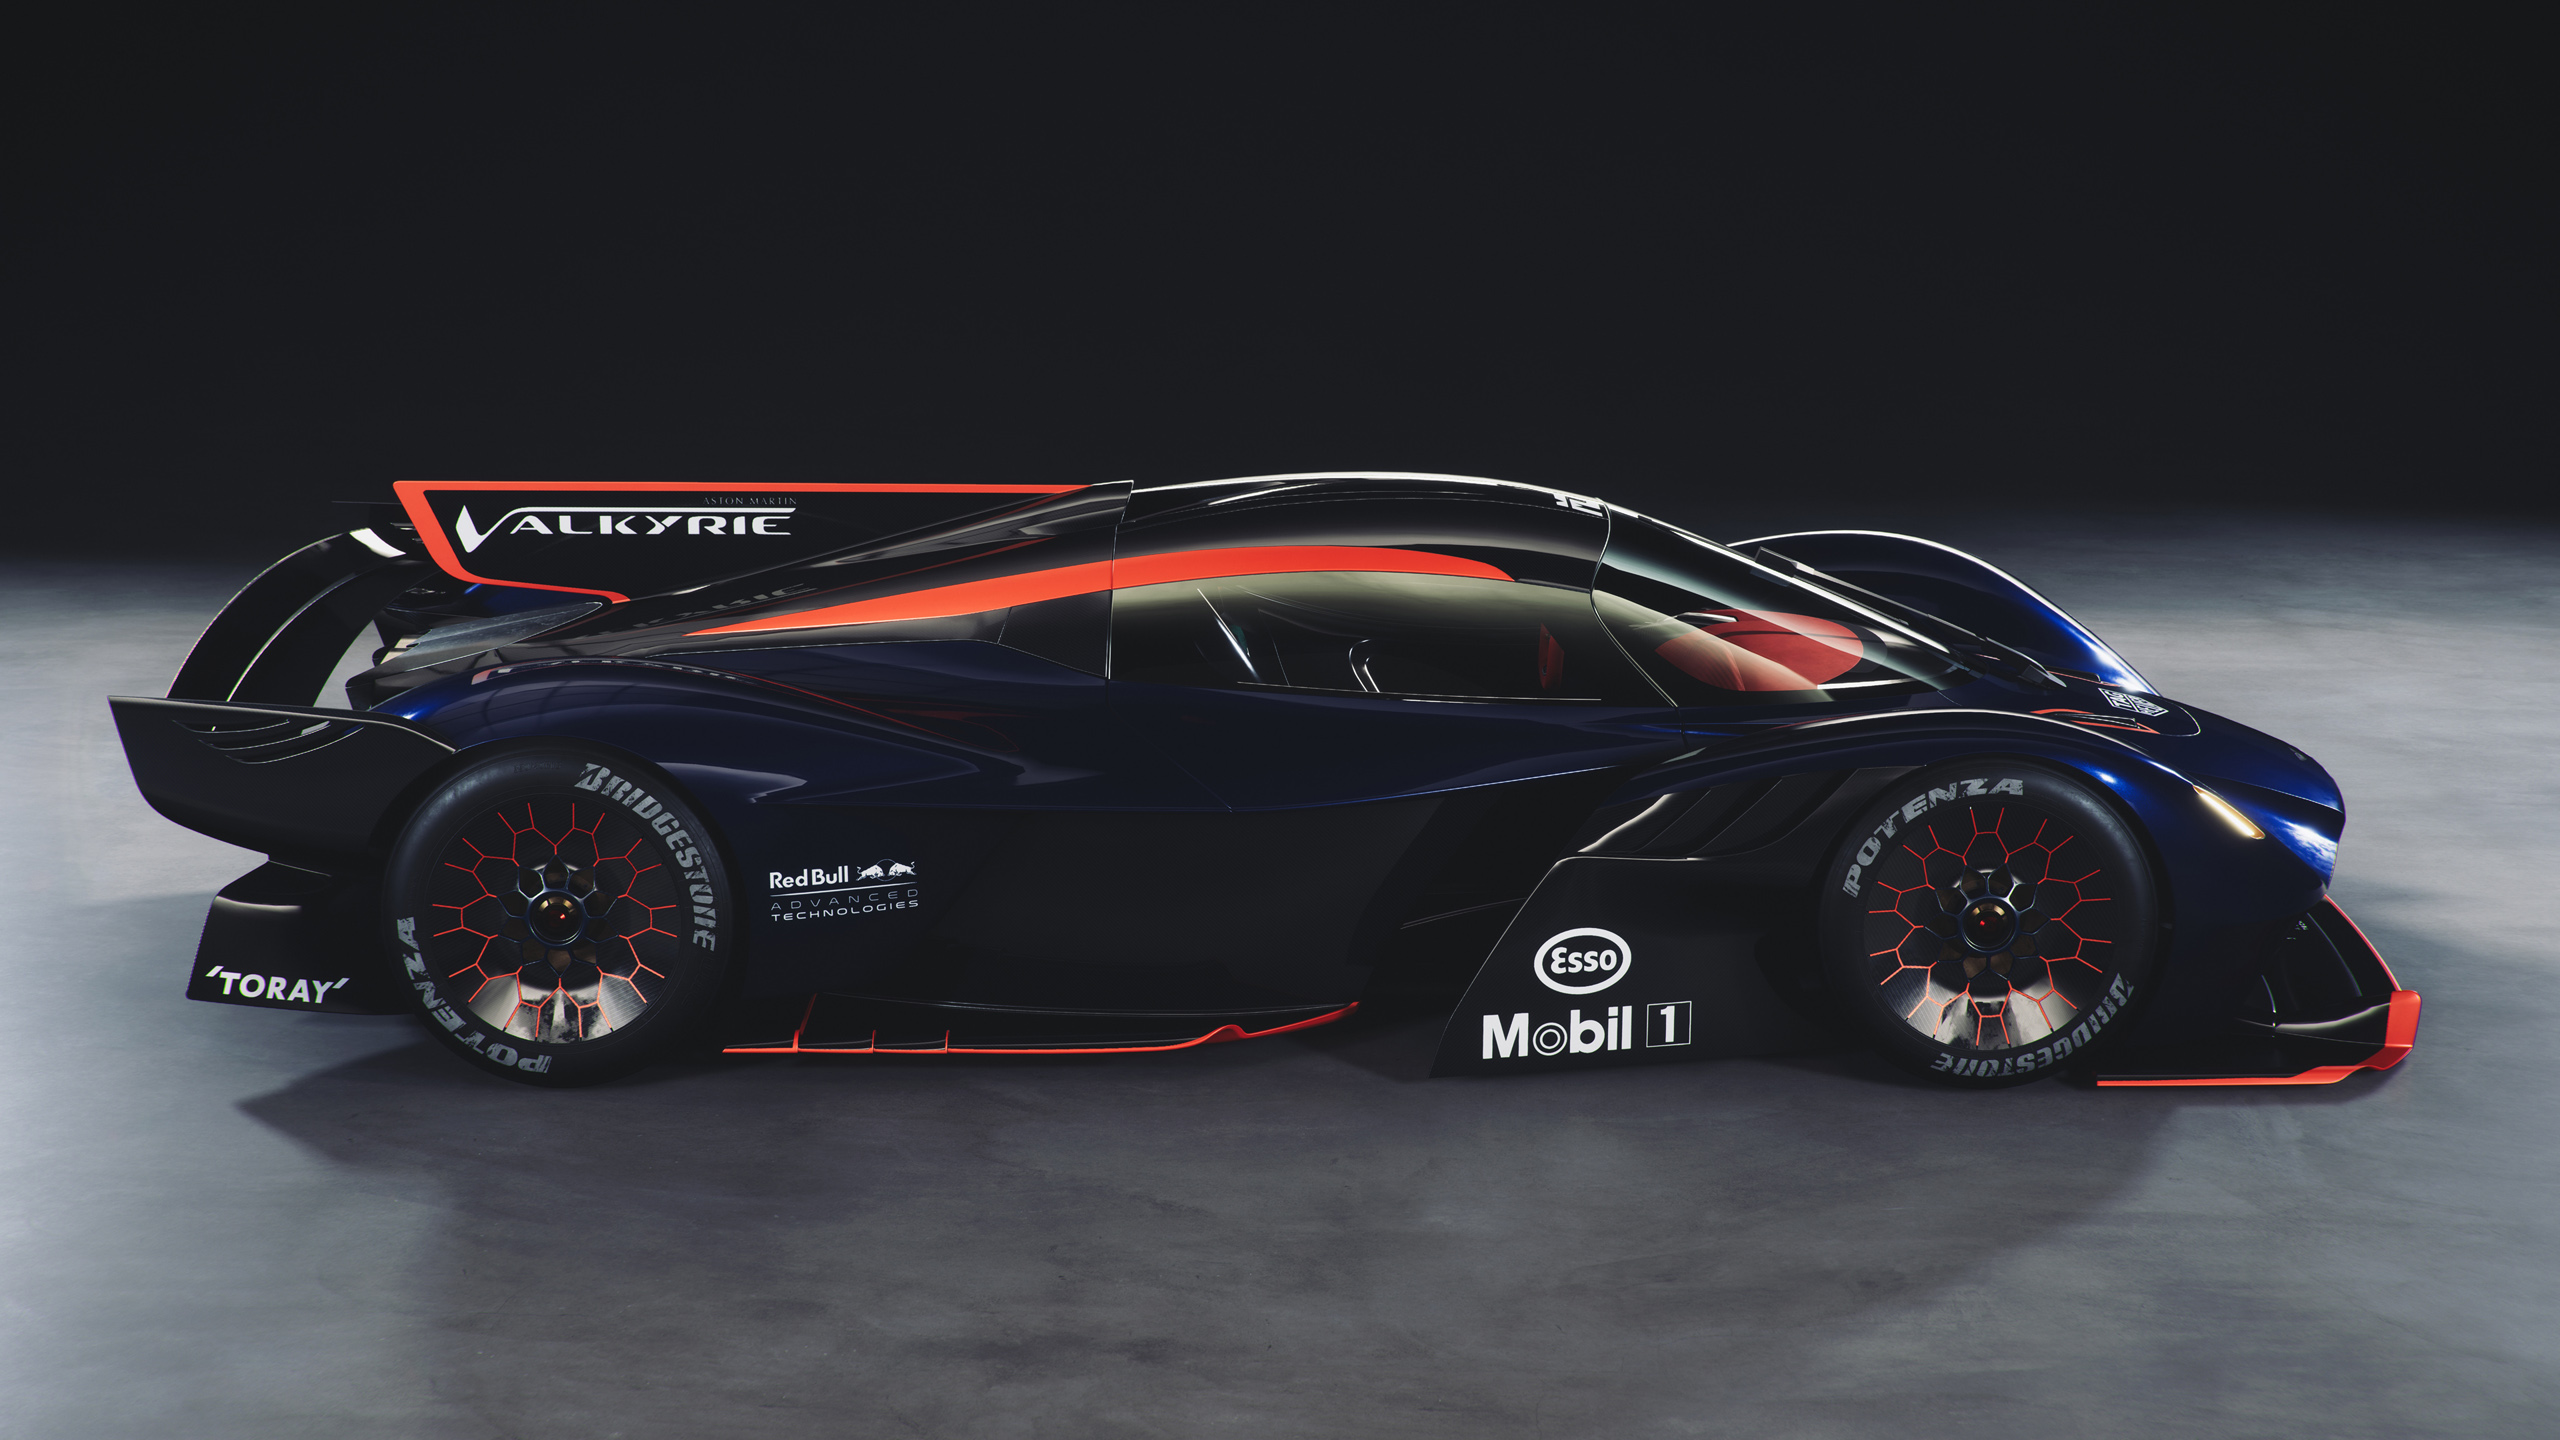 AMValkyrieAMR_v6_cam16_r_down_1440p_RTX Aston Martin Valkyrie AMR Pro for Assetto Corsa – New Previews